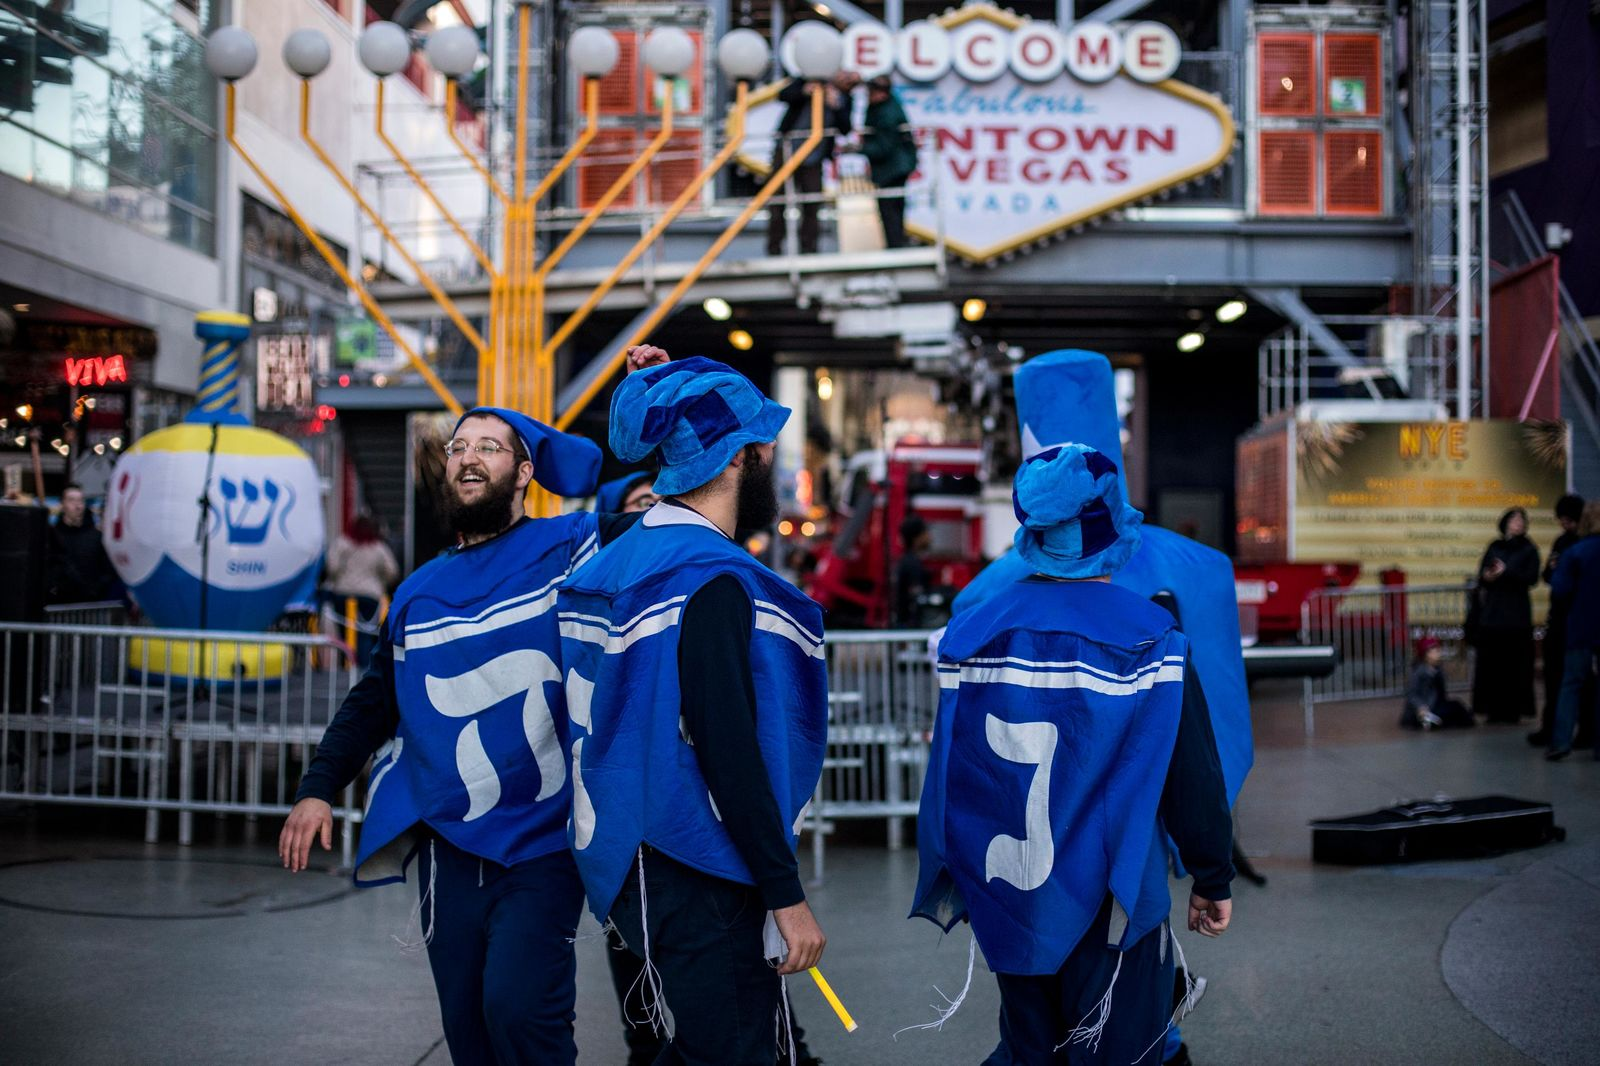 Shlomo Sirota and the dancing menorahs pump up the crowd before the start of the Grand Menorah lighting Sunday, Dec. 2 on Fremont Street. The ceremony featured a 20-foot Grand Menorah, which will remain on display throughout the Hanukkah season. CREDIT: Joe Buglewicz/Las Vegas News Bureau